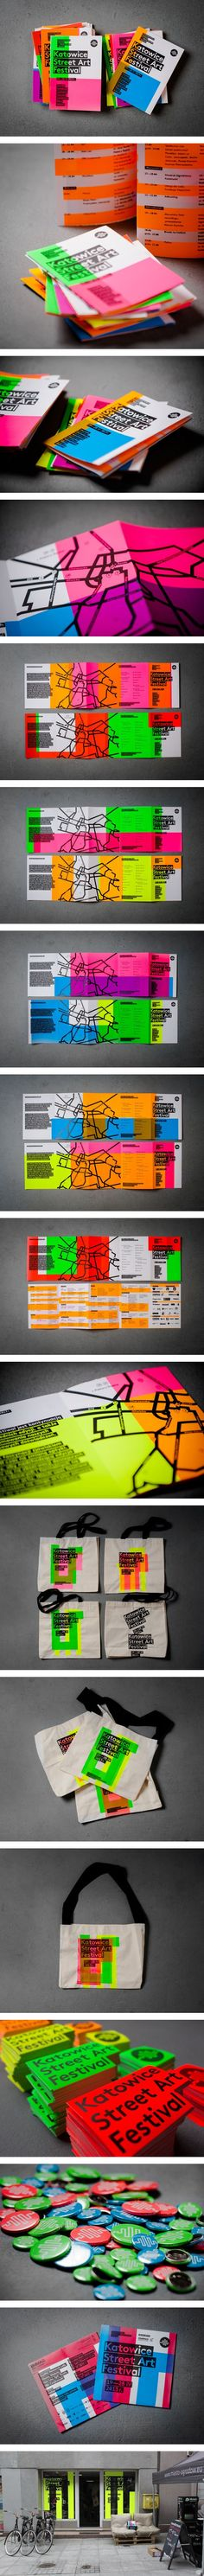 Katowice Steet Art Festival by Marta Gawin. If you're a user experience professional, listen to The UX Blog Podcast on iTunes.